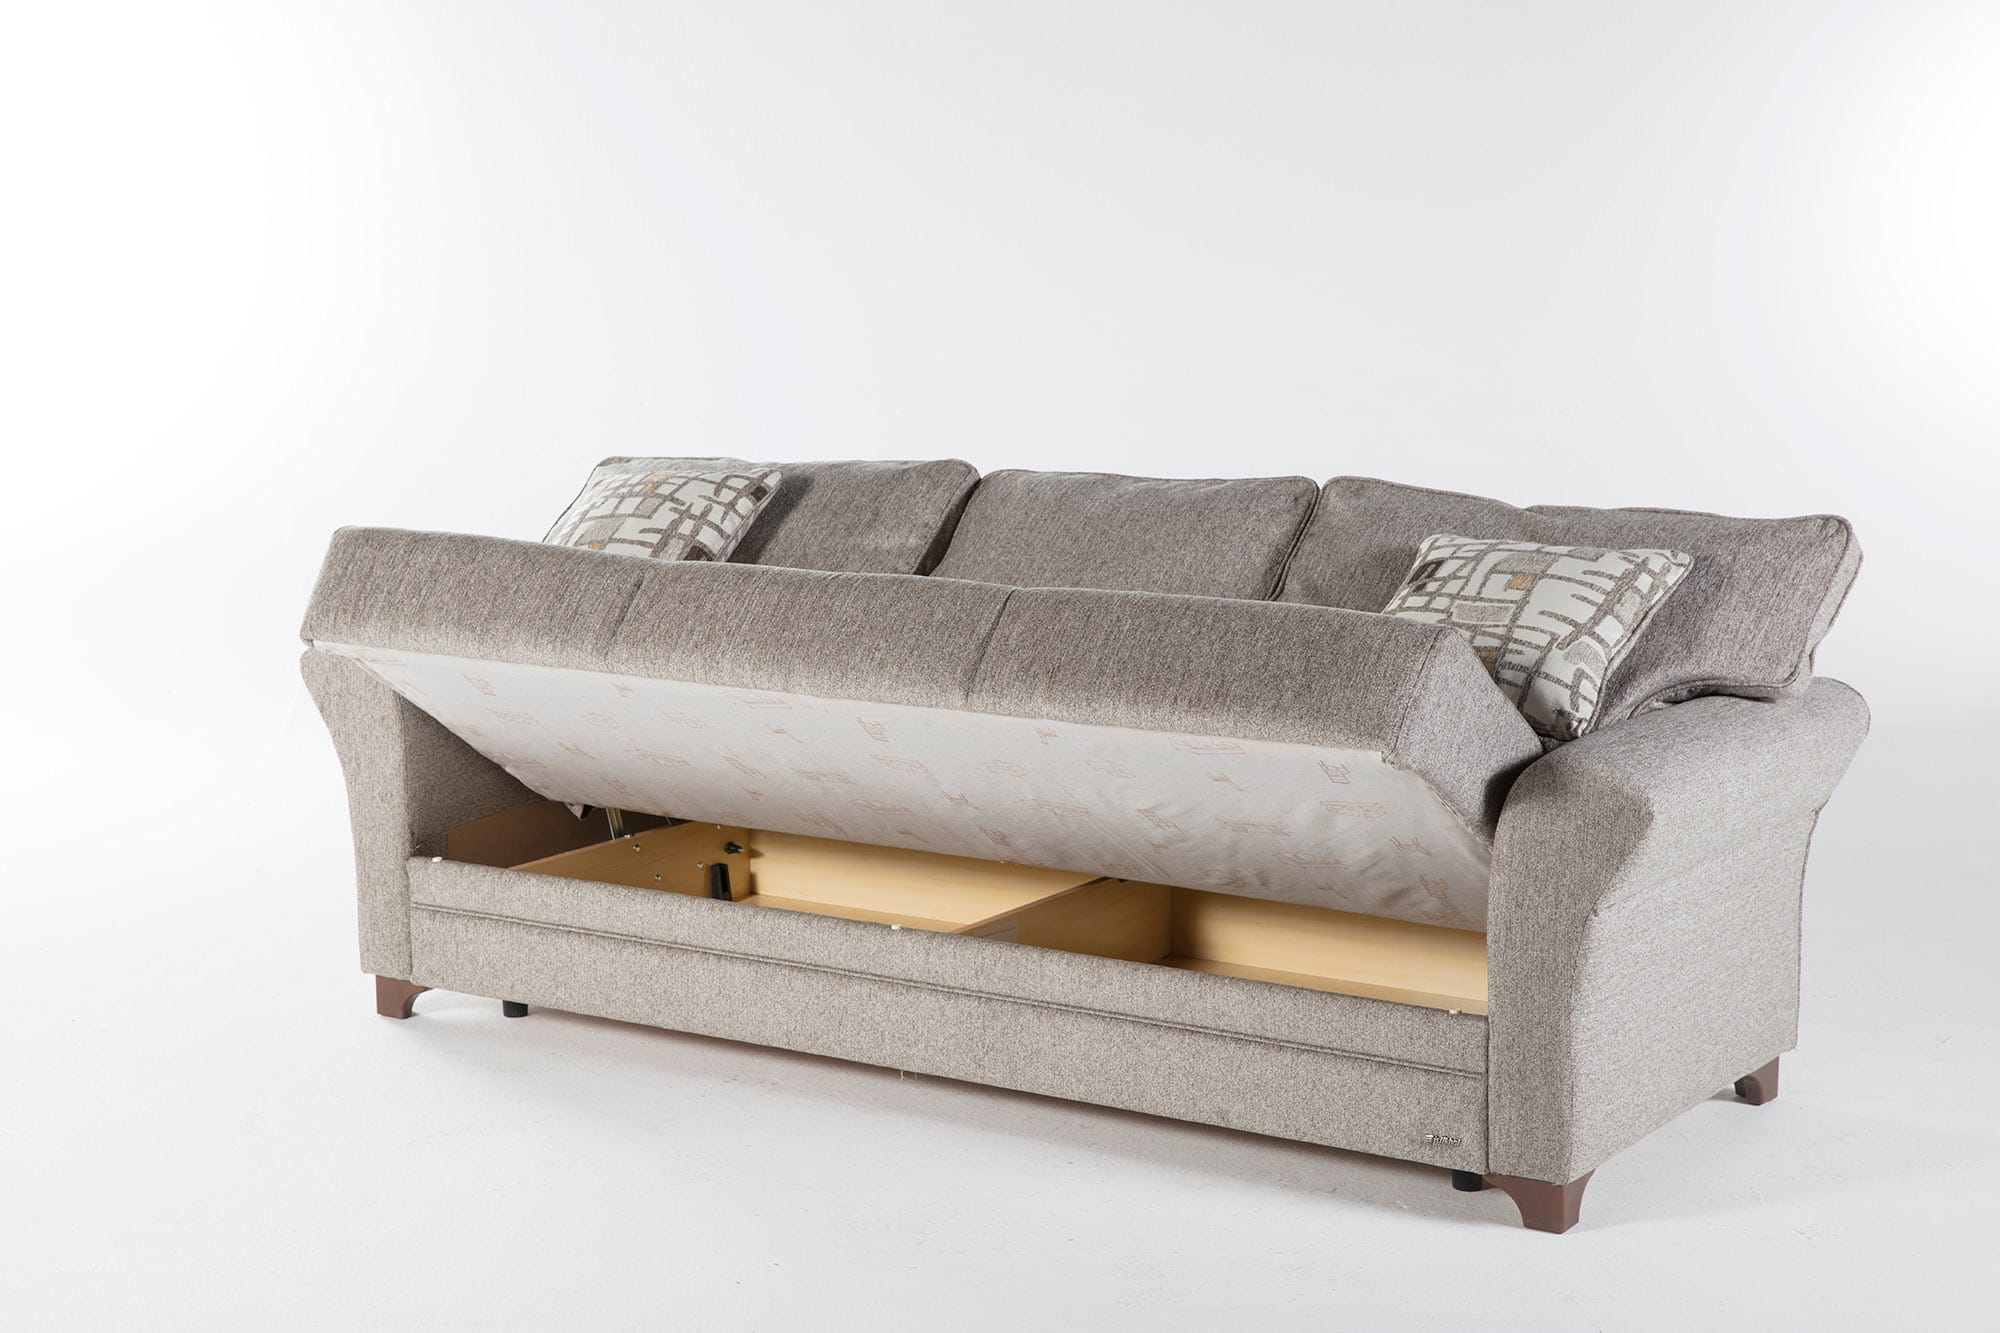 Padova Aristo Light Brown Convertible Sofa Bed by Istikbal (Sunset)